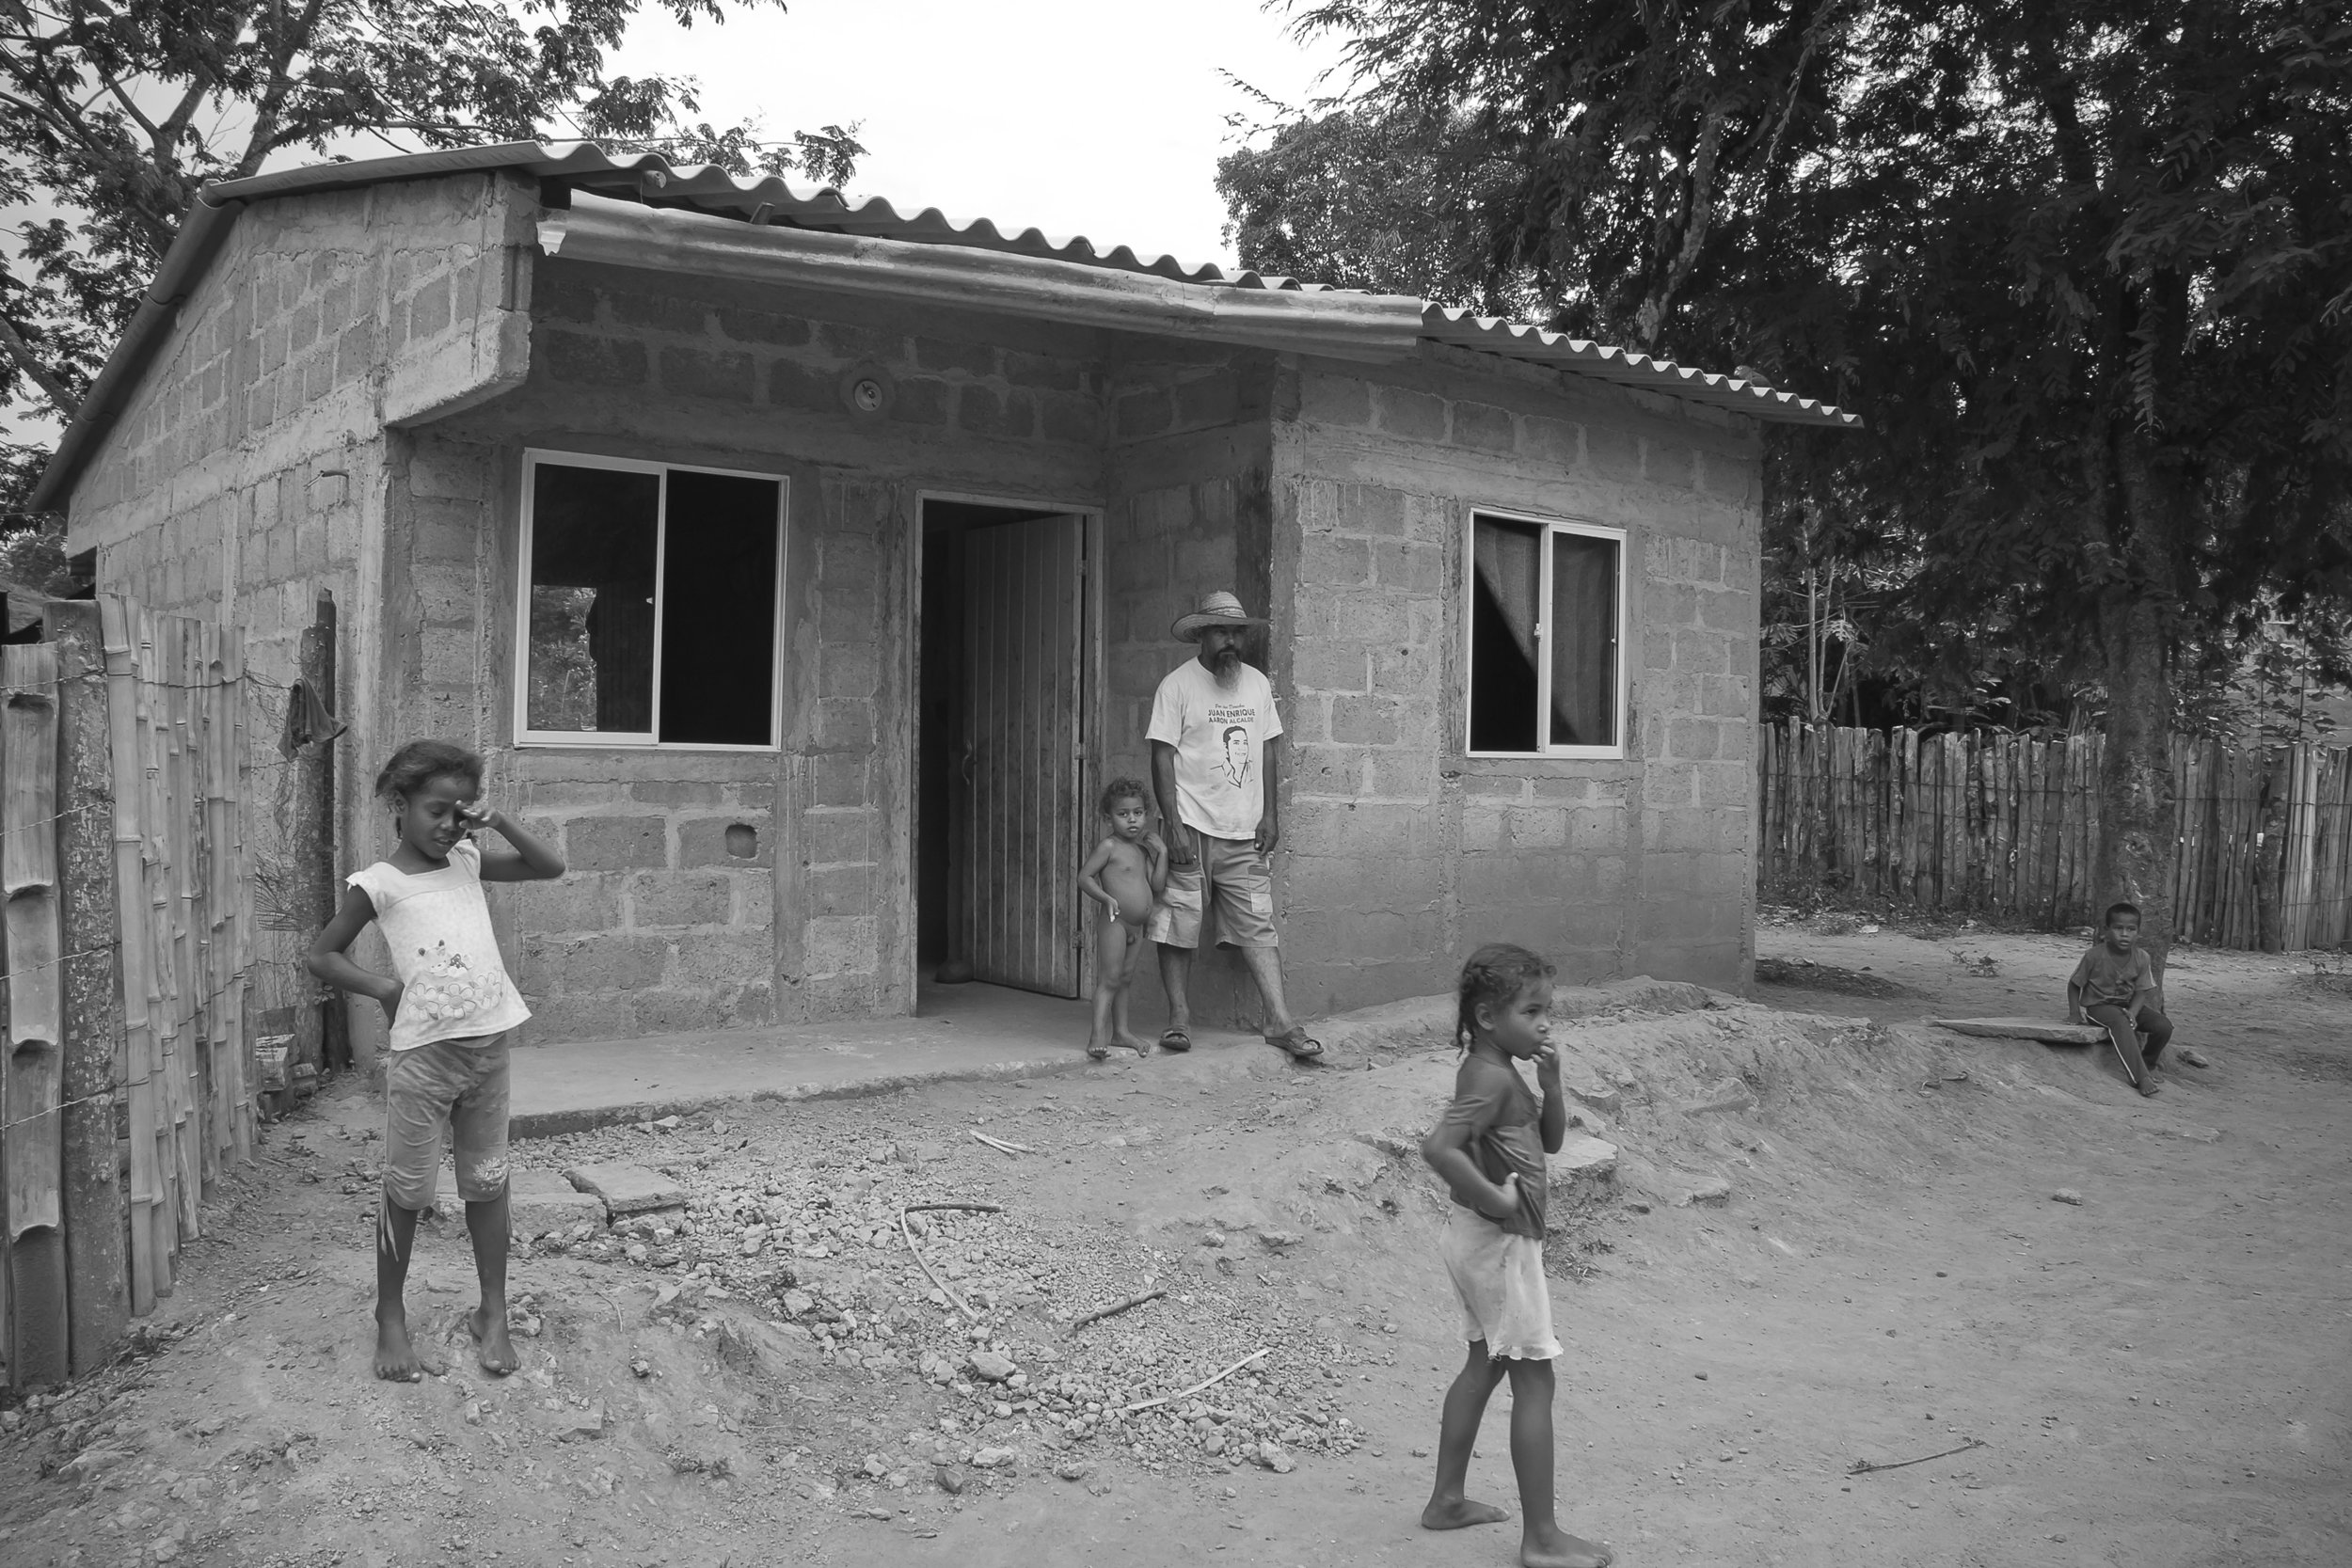 This is a house donated by the Colombian Government. It is a small house for a single family. They are now back to their land where they can farm, keep livestock and eventually improve their house for better conditions.